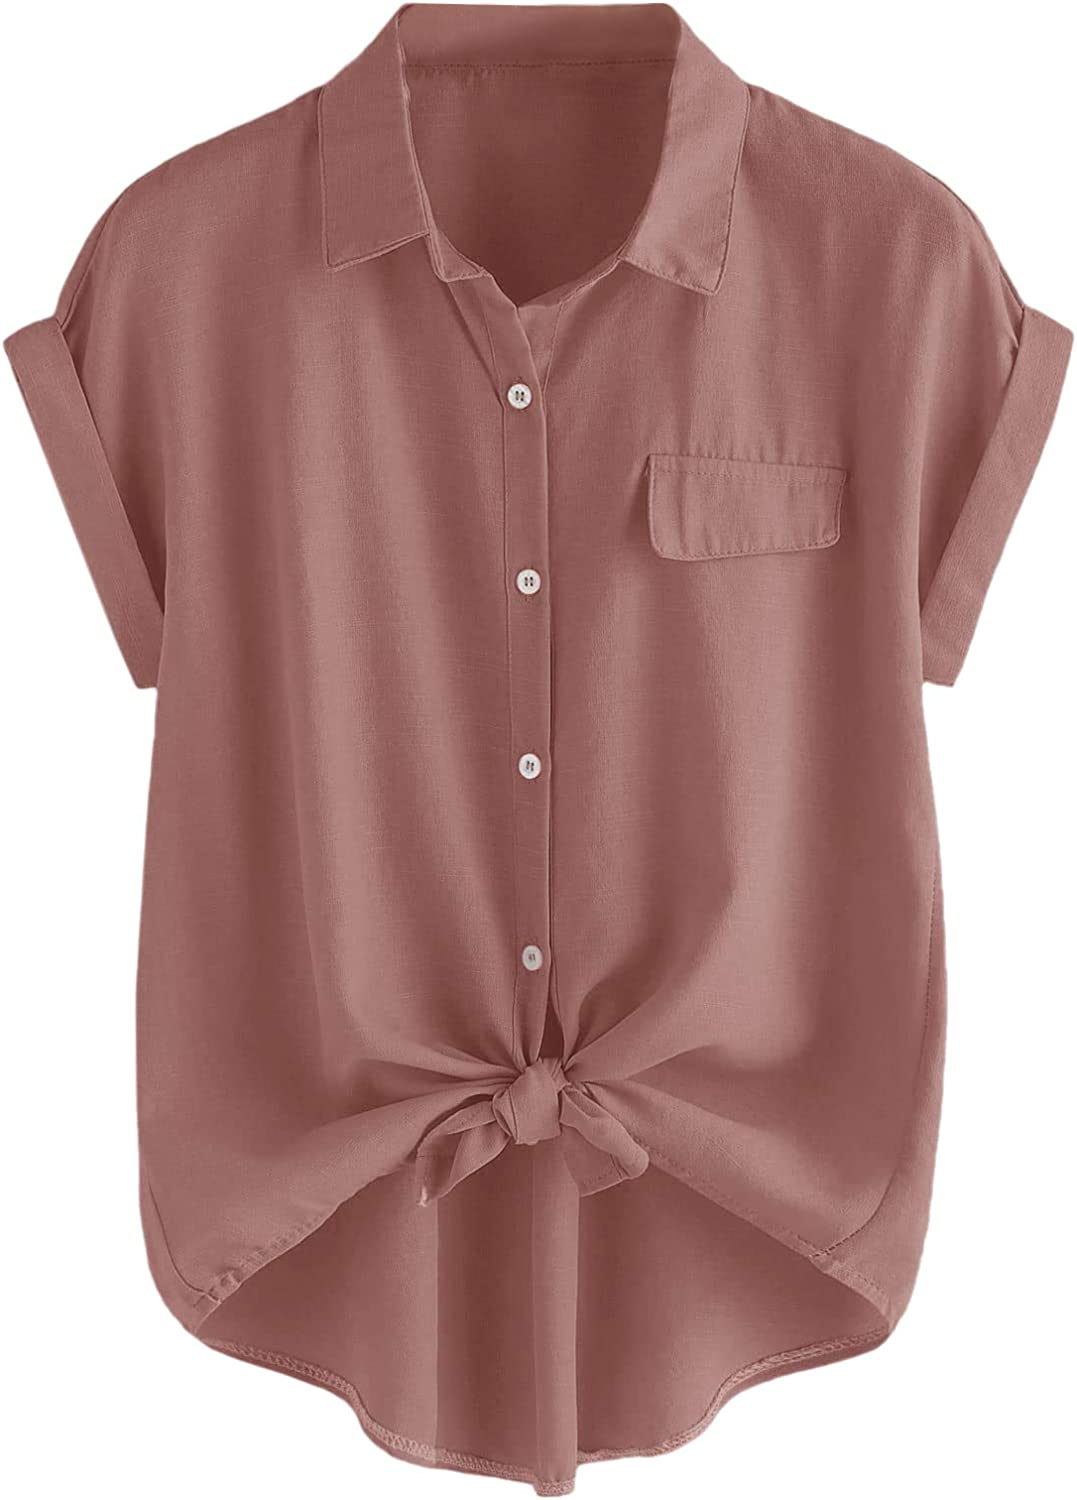 Romwe Women's Plus Size Casual Short Sleeve Button Down T Shirts Loose Tops